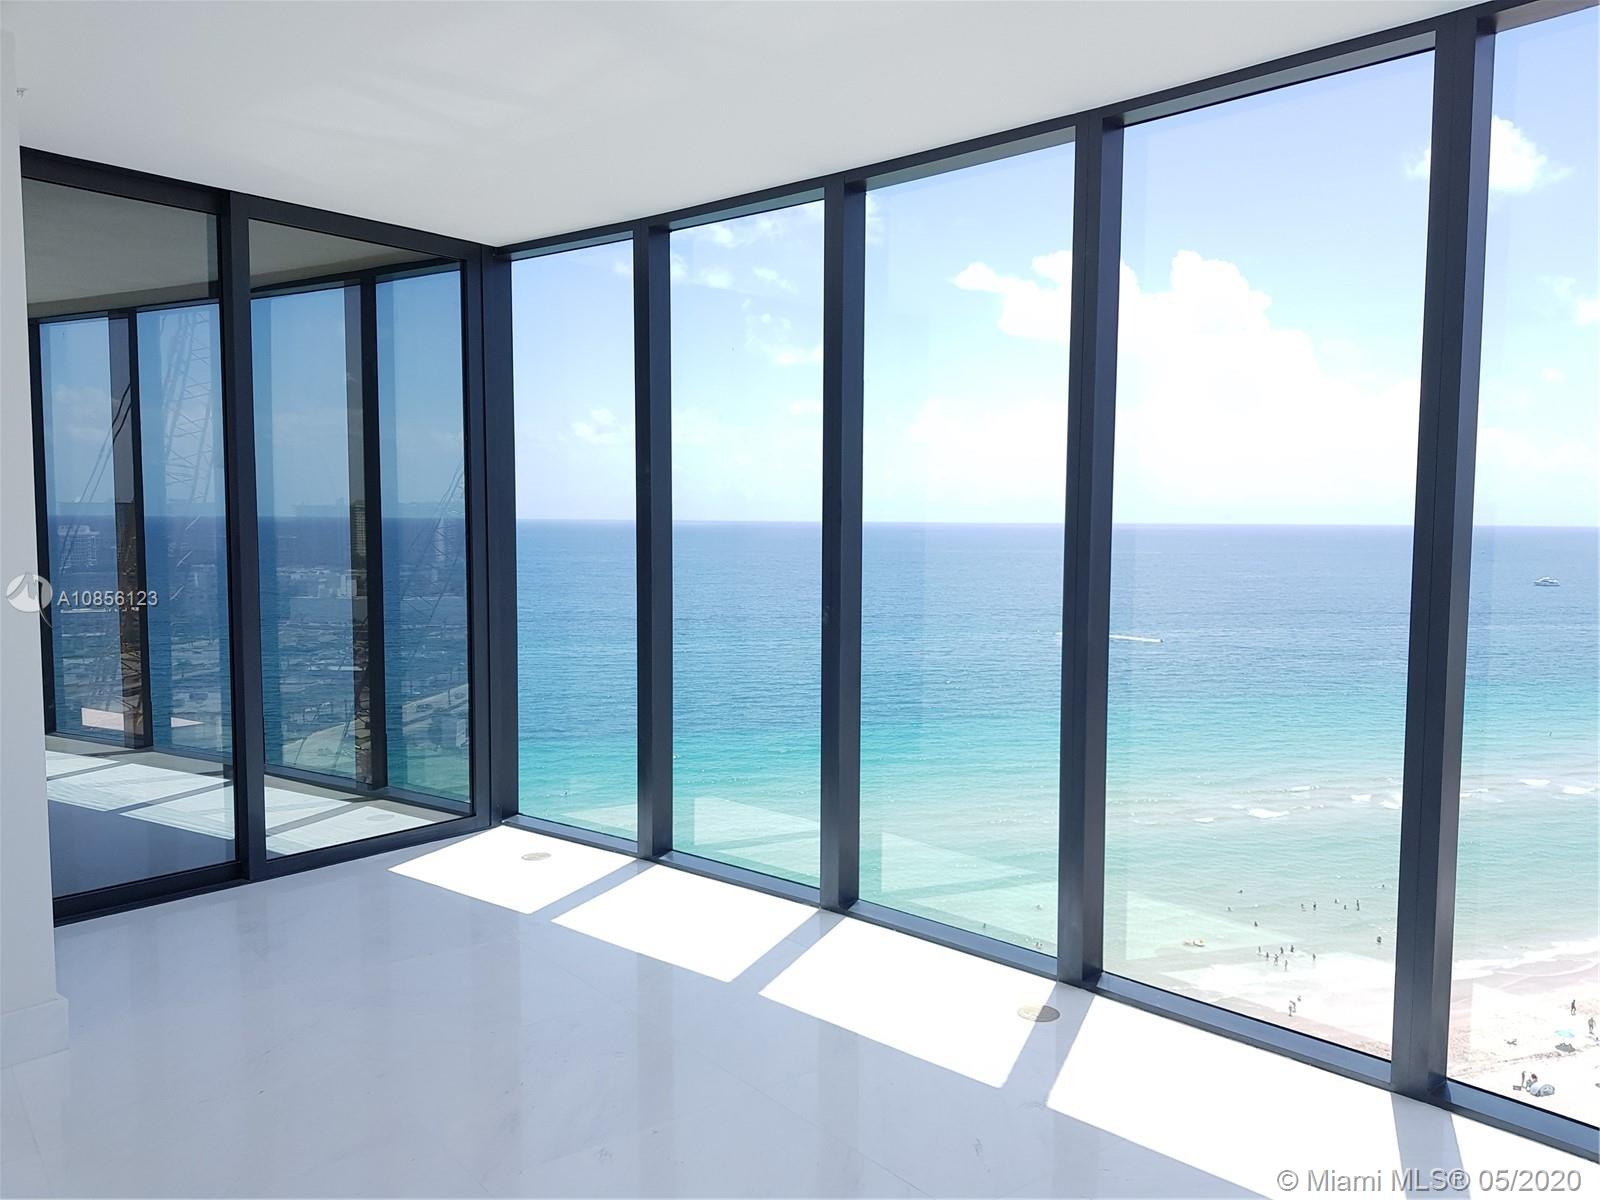 18555 Collins Ave, Unit #1701 Luxury Real Estate